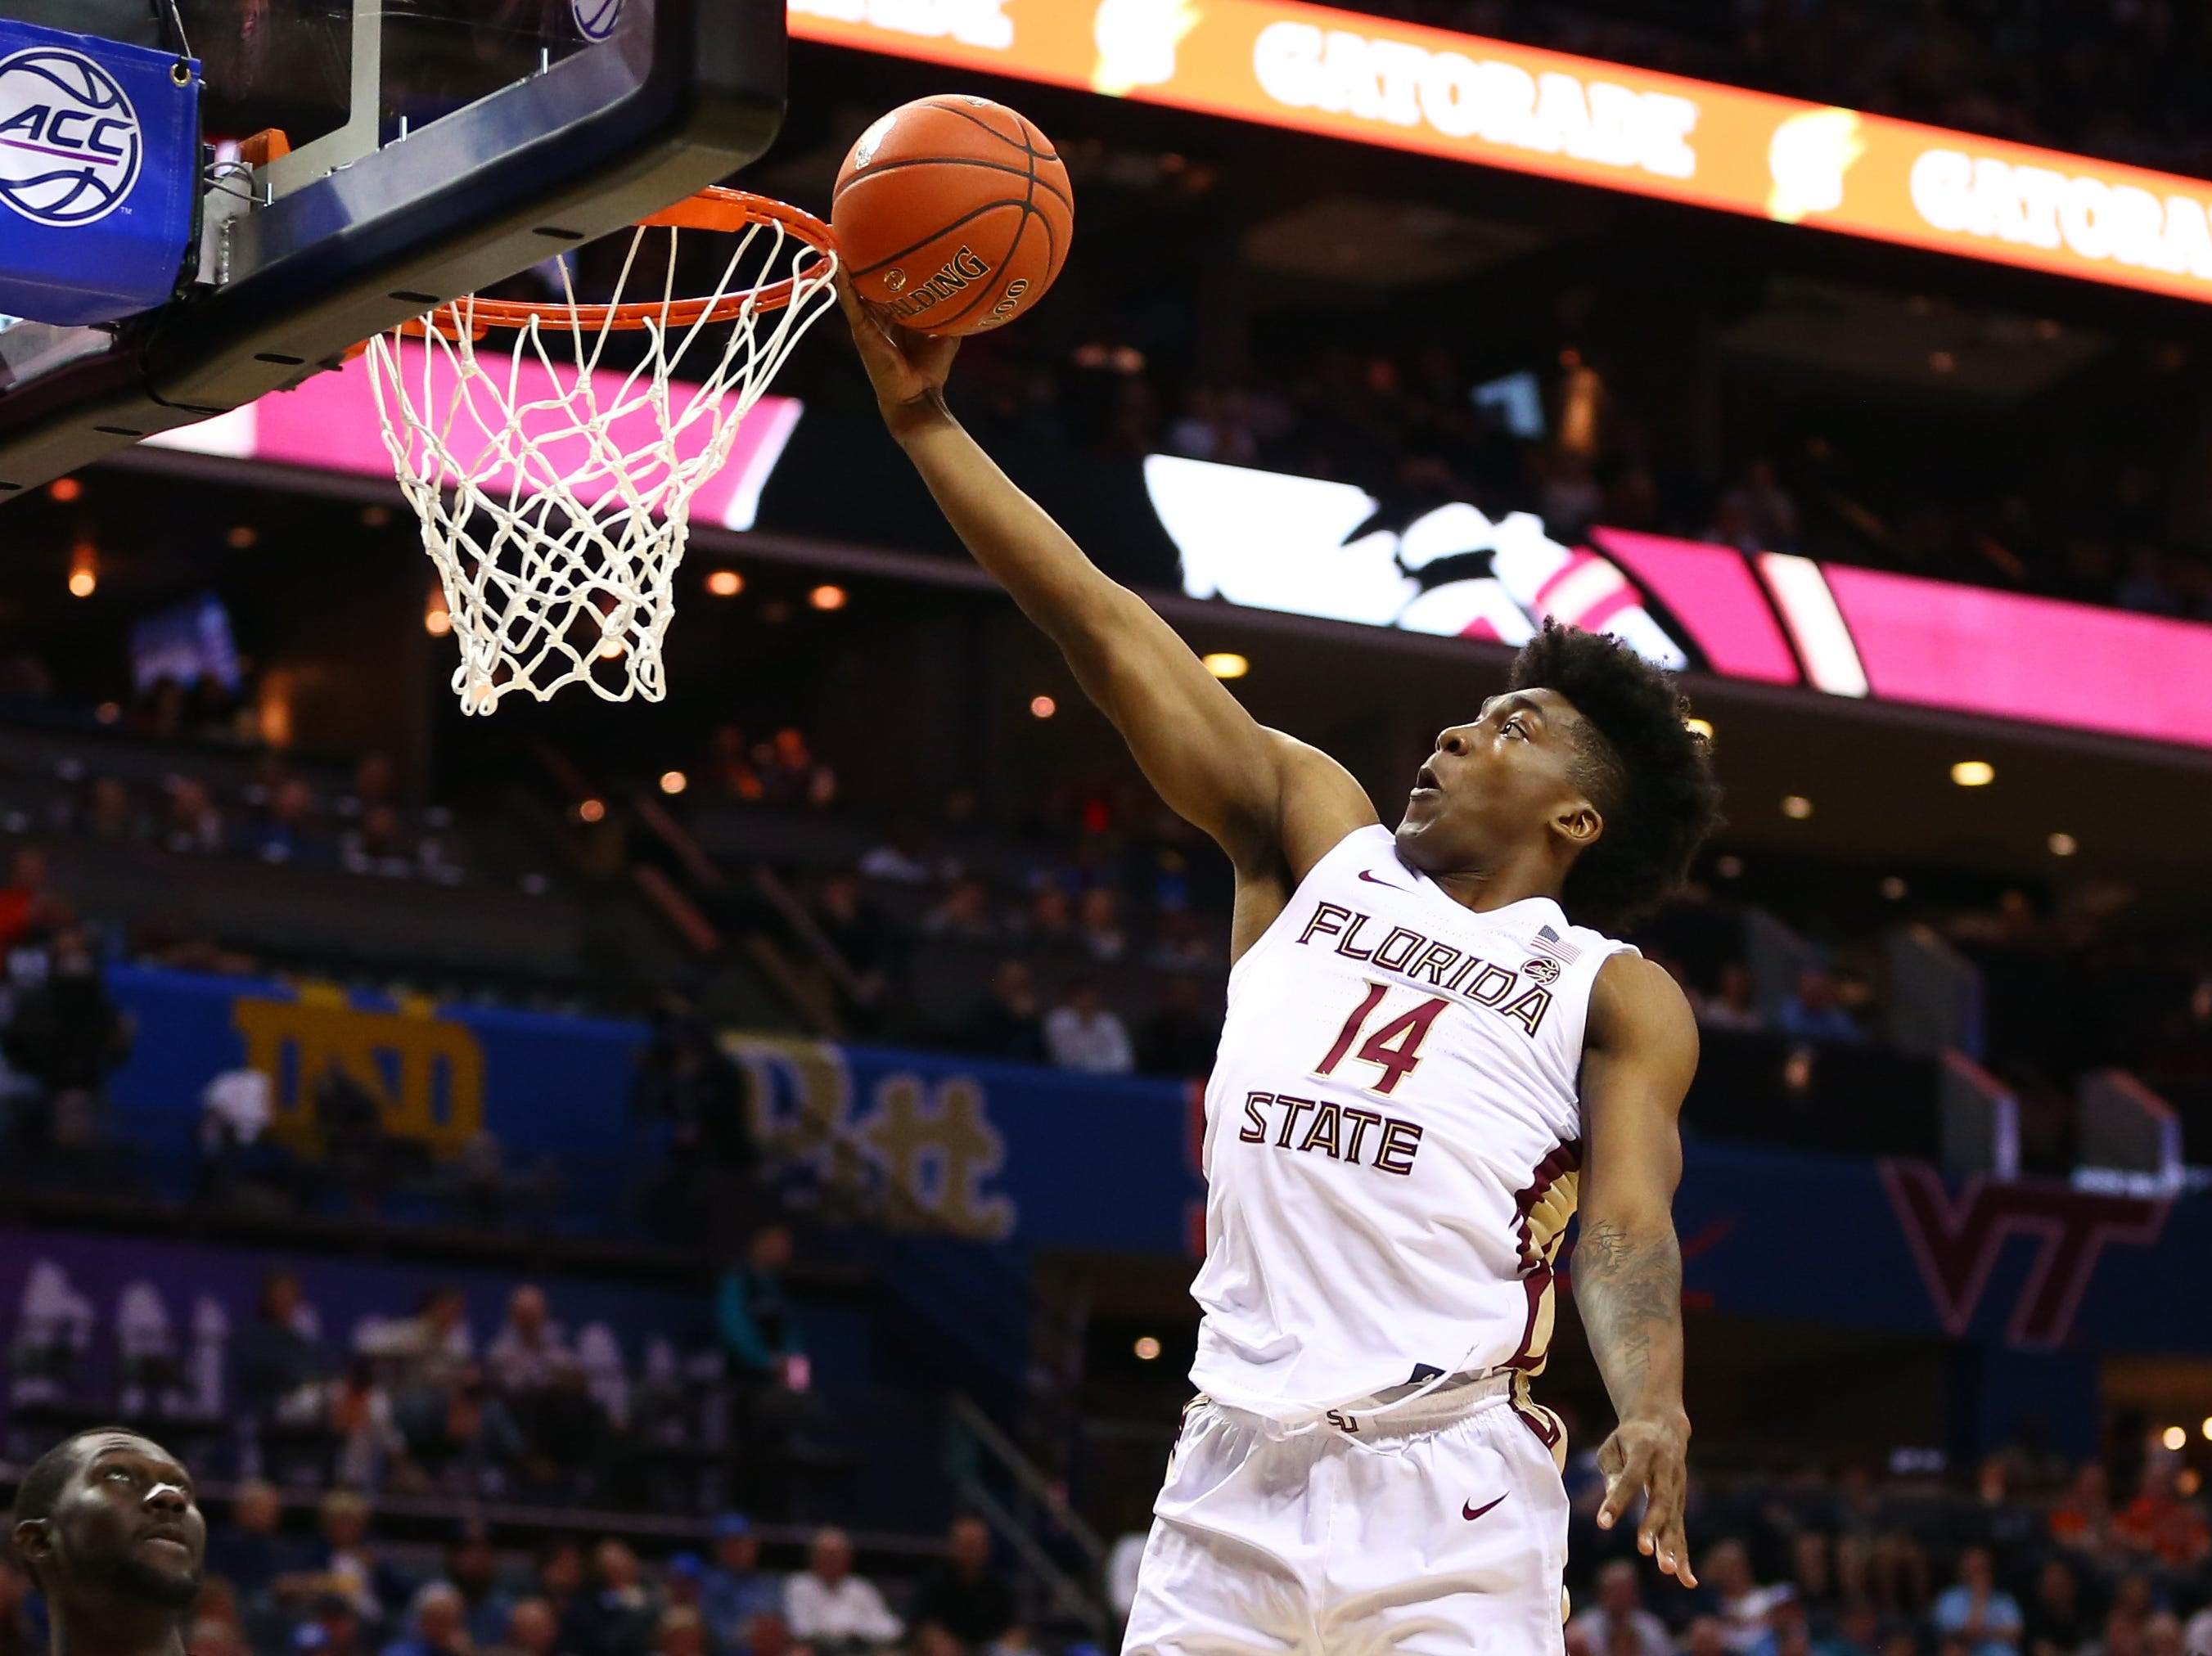 Mar 14, 2019; Charlotte, NC, USA; Florida State Seminoles guard Terance Mann (14) goes up for a shot against the Virginia Tech Hokies in the first half in the ACC conference tournament at Spectrum Center. Mandatory Credit: Jeremy Brevard-USA TODAY Sports